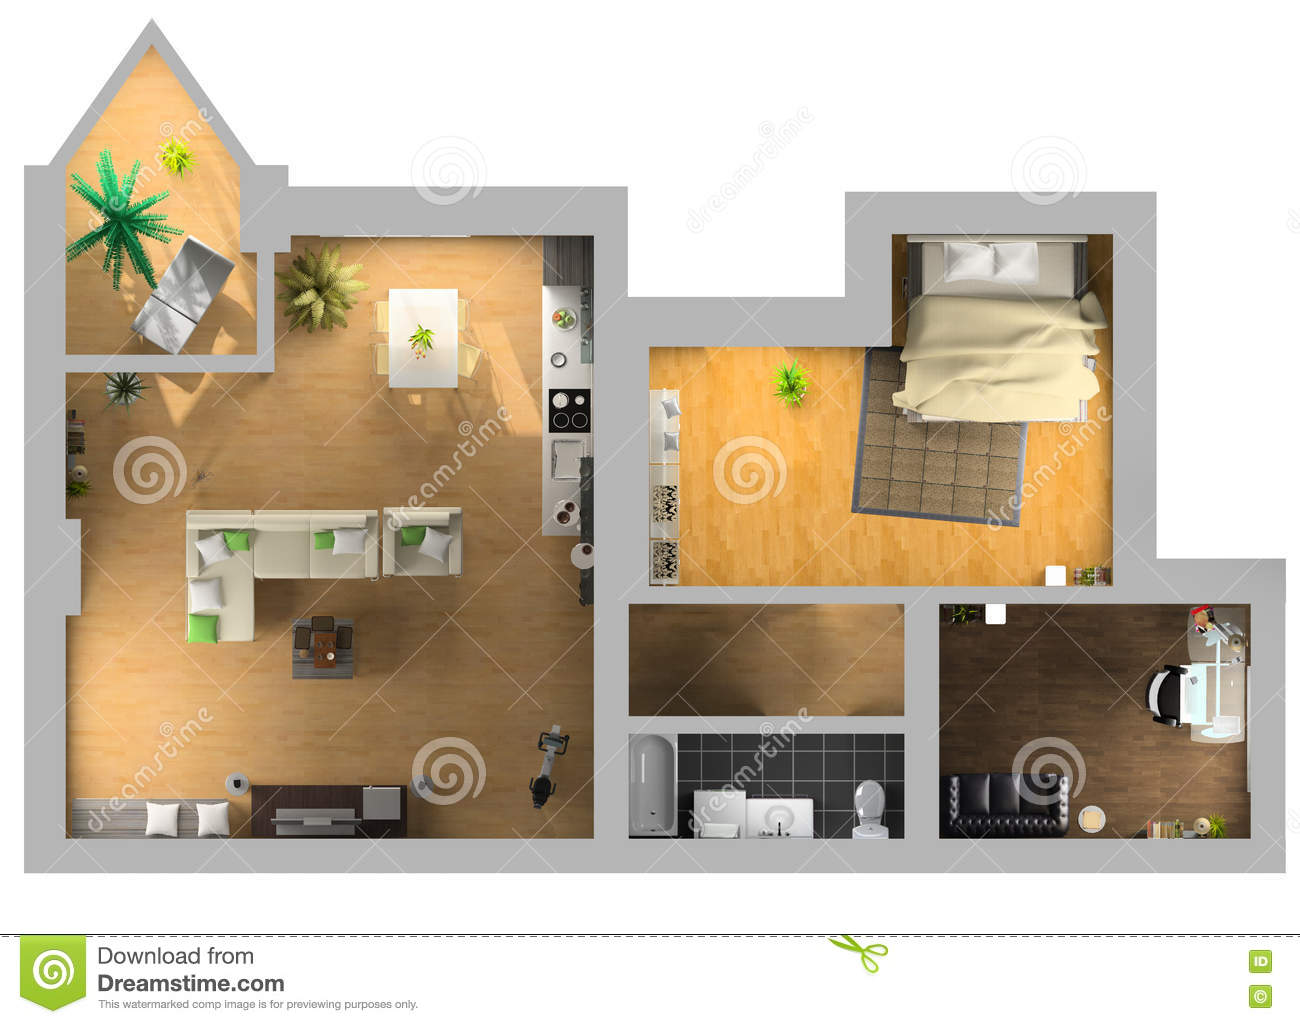 Interior design stock illustration. Illustration of design ...